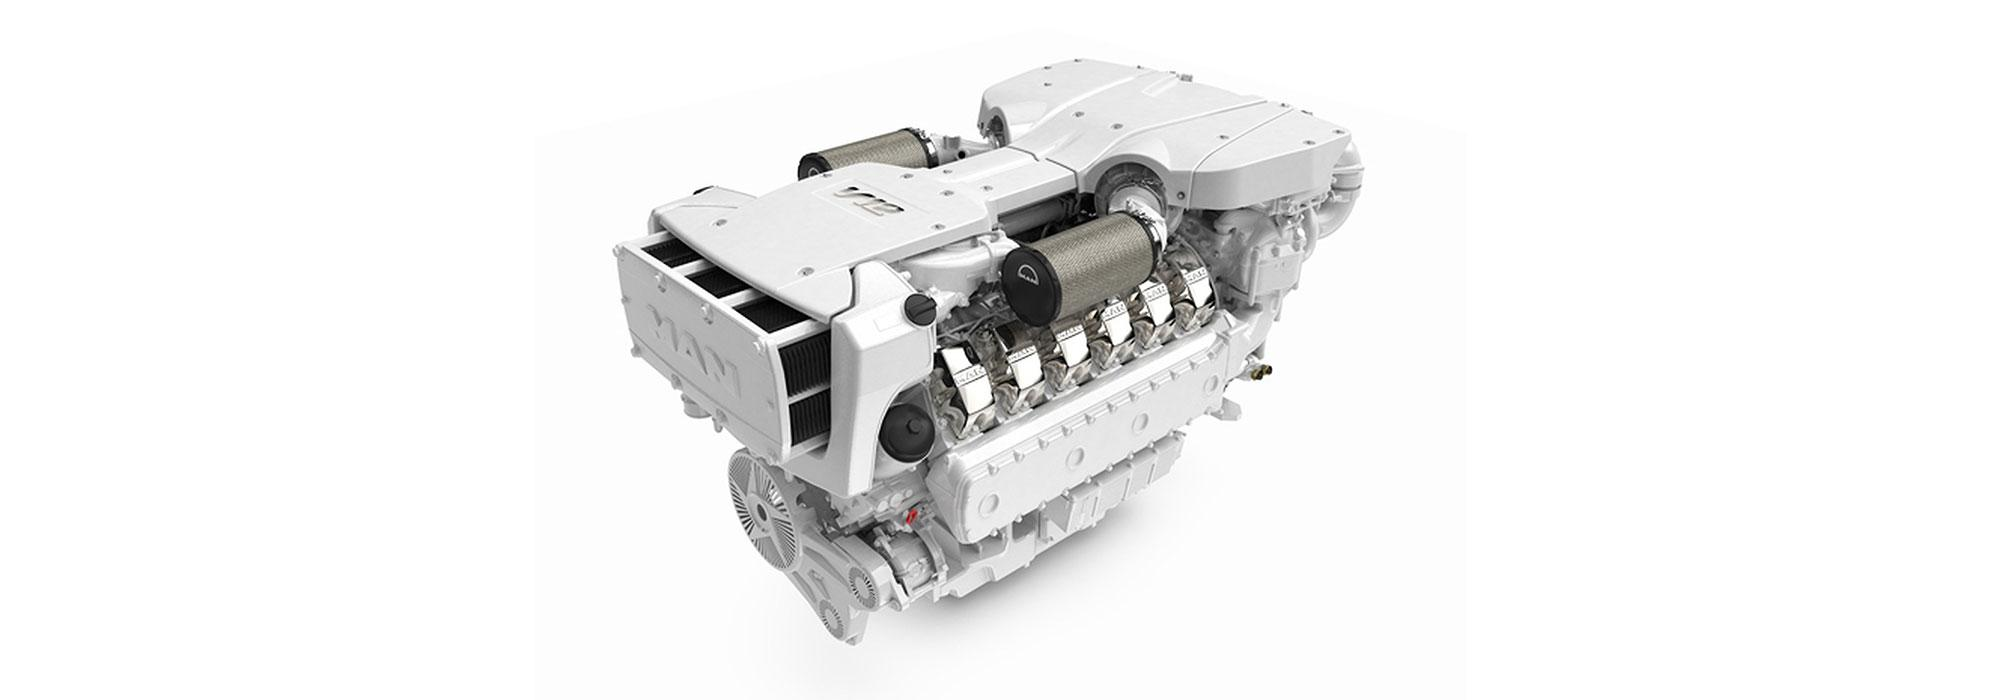 MAN Engines V12-1900 thanks to the performance enhancement that increased engine power to 1,397 kW